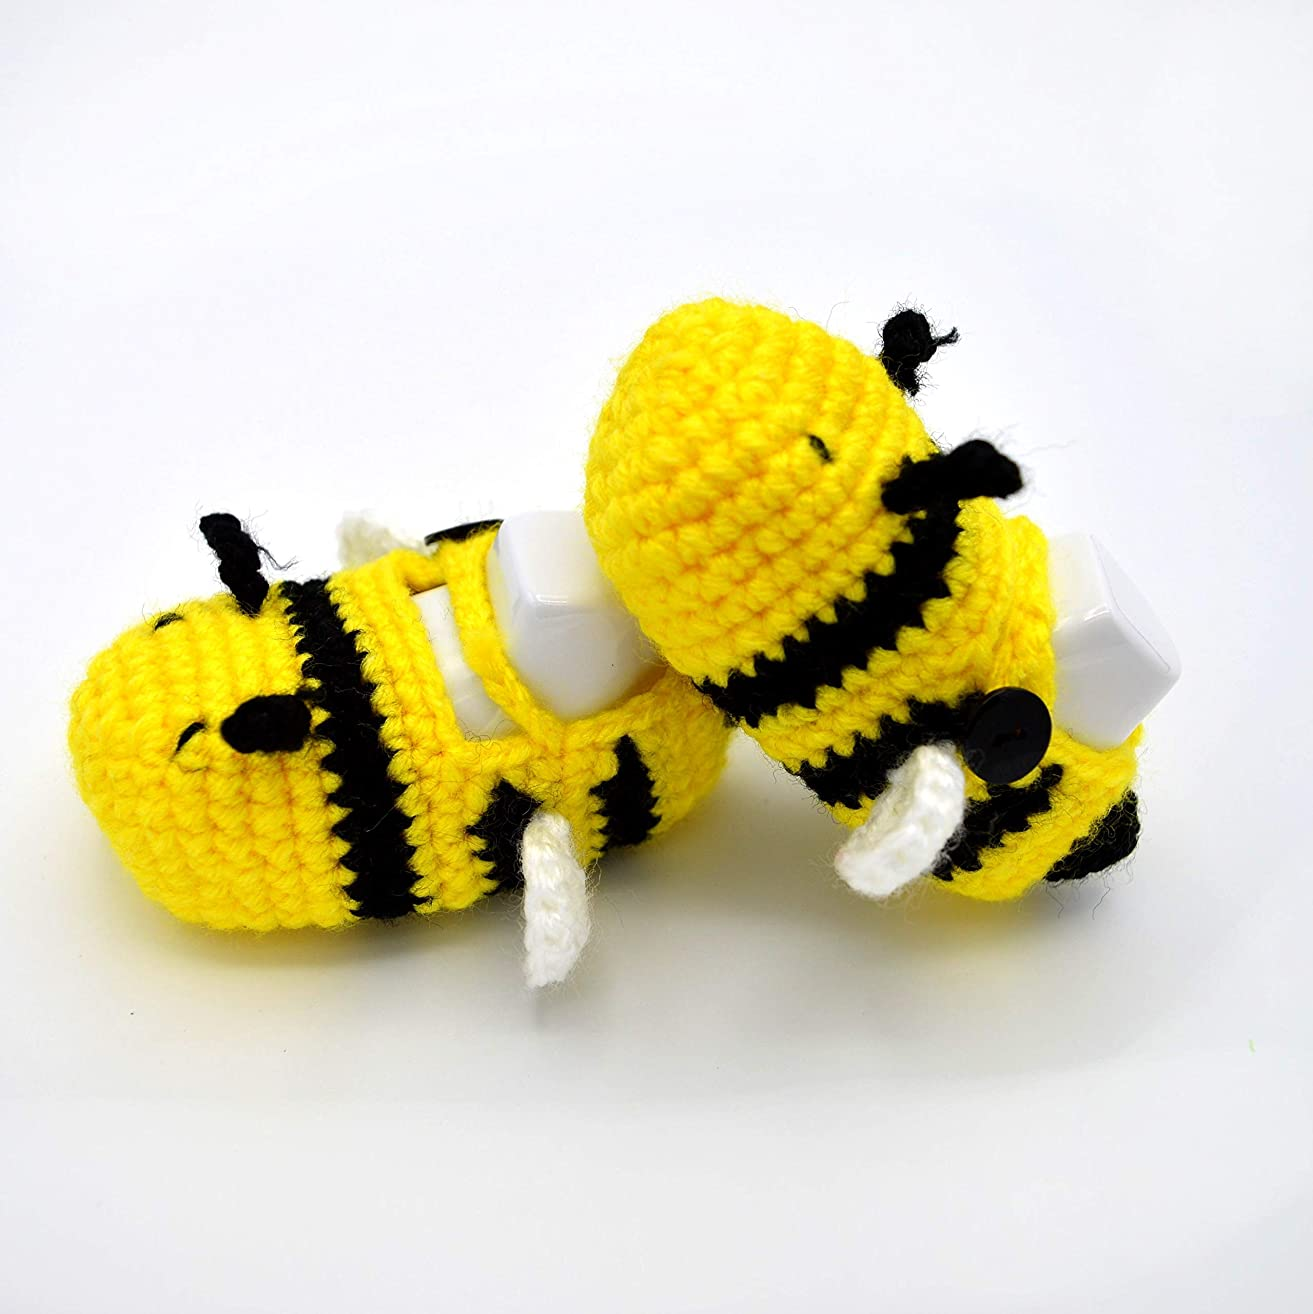 Crochet Baby Boy Shoes 0-6 months - Crib Shoes for Infant or Newborn - Baby Shower Gifts for Boy - Shoes for Babies - Baby First Shoes - Bumble Bee Shoes - Yellow